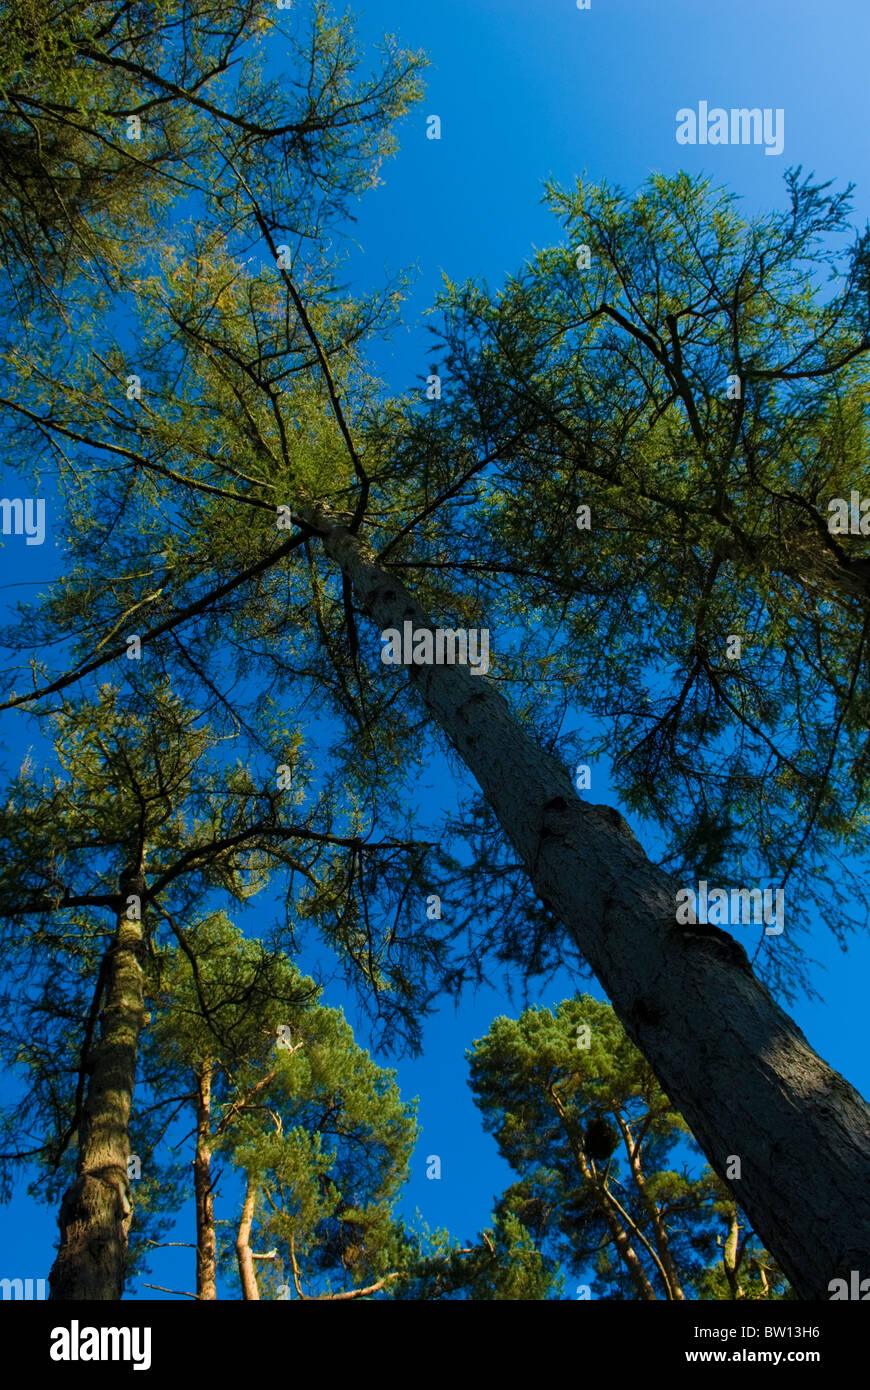 Looking up to tree canopy under a blue sky - Stock Image